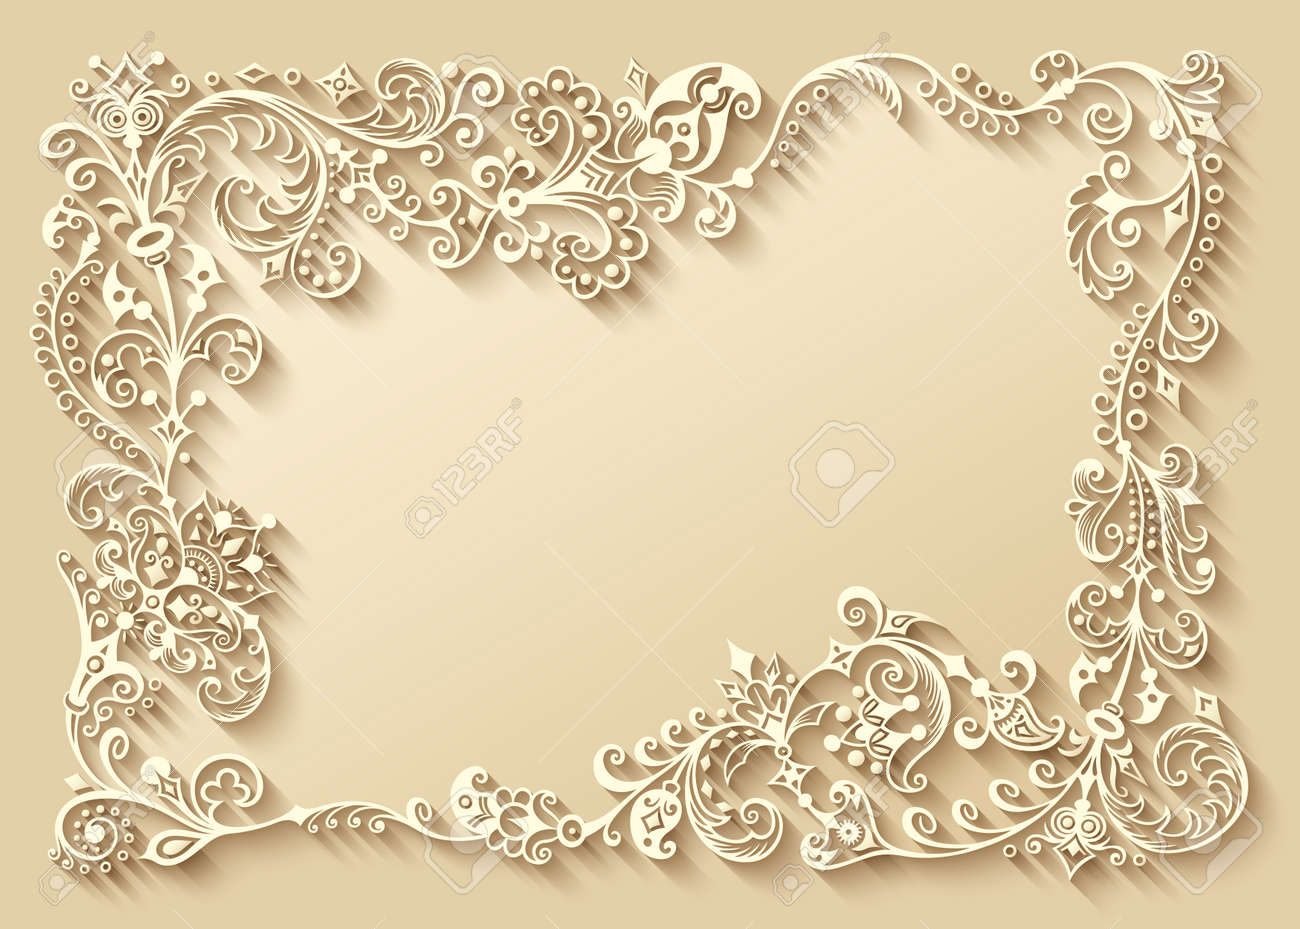 Abstract vector ornamental nature vintage frame. - 152202600